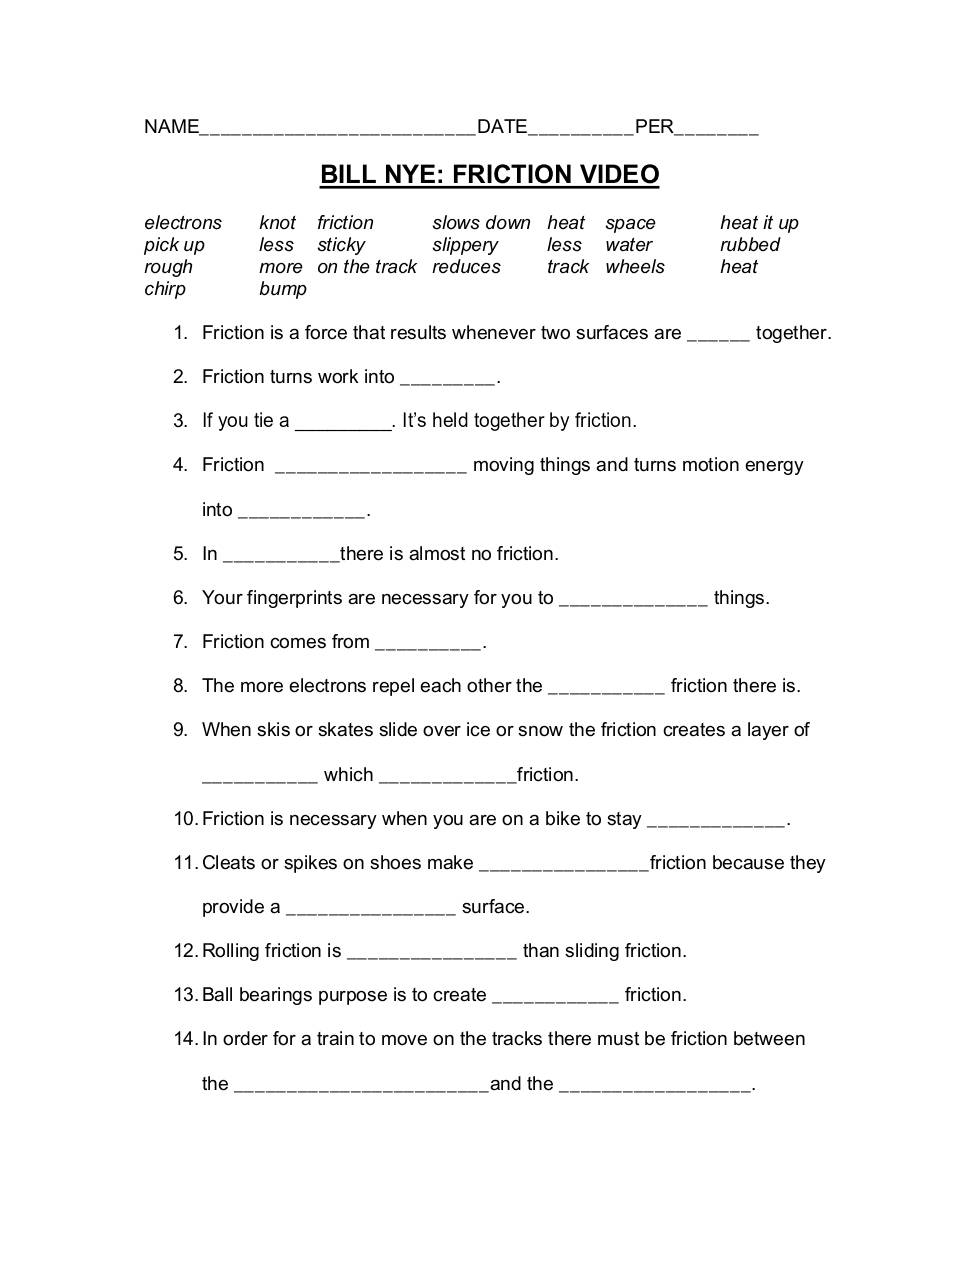 Worksheets Bill Nye Worksheets bill nye friction worksheet dochub